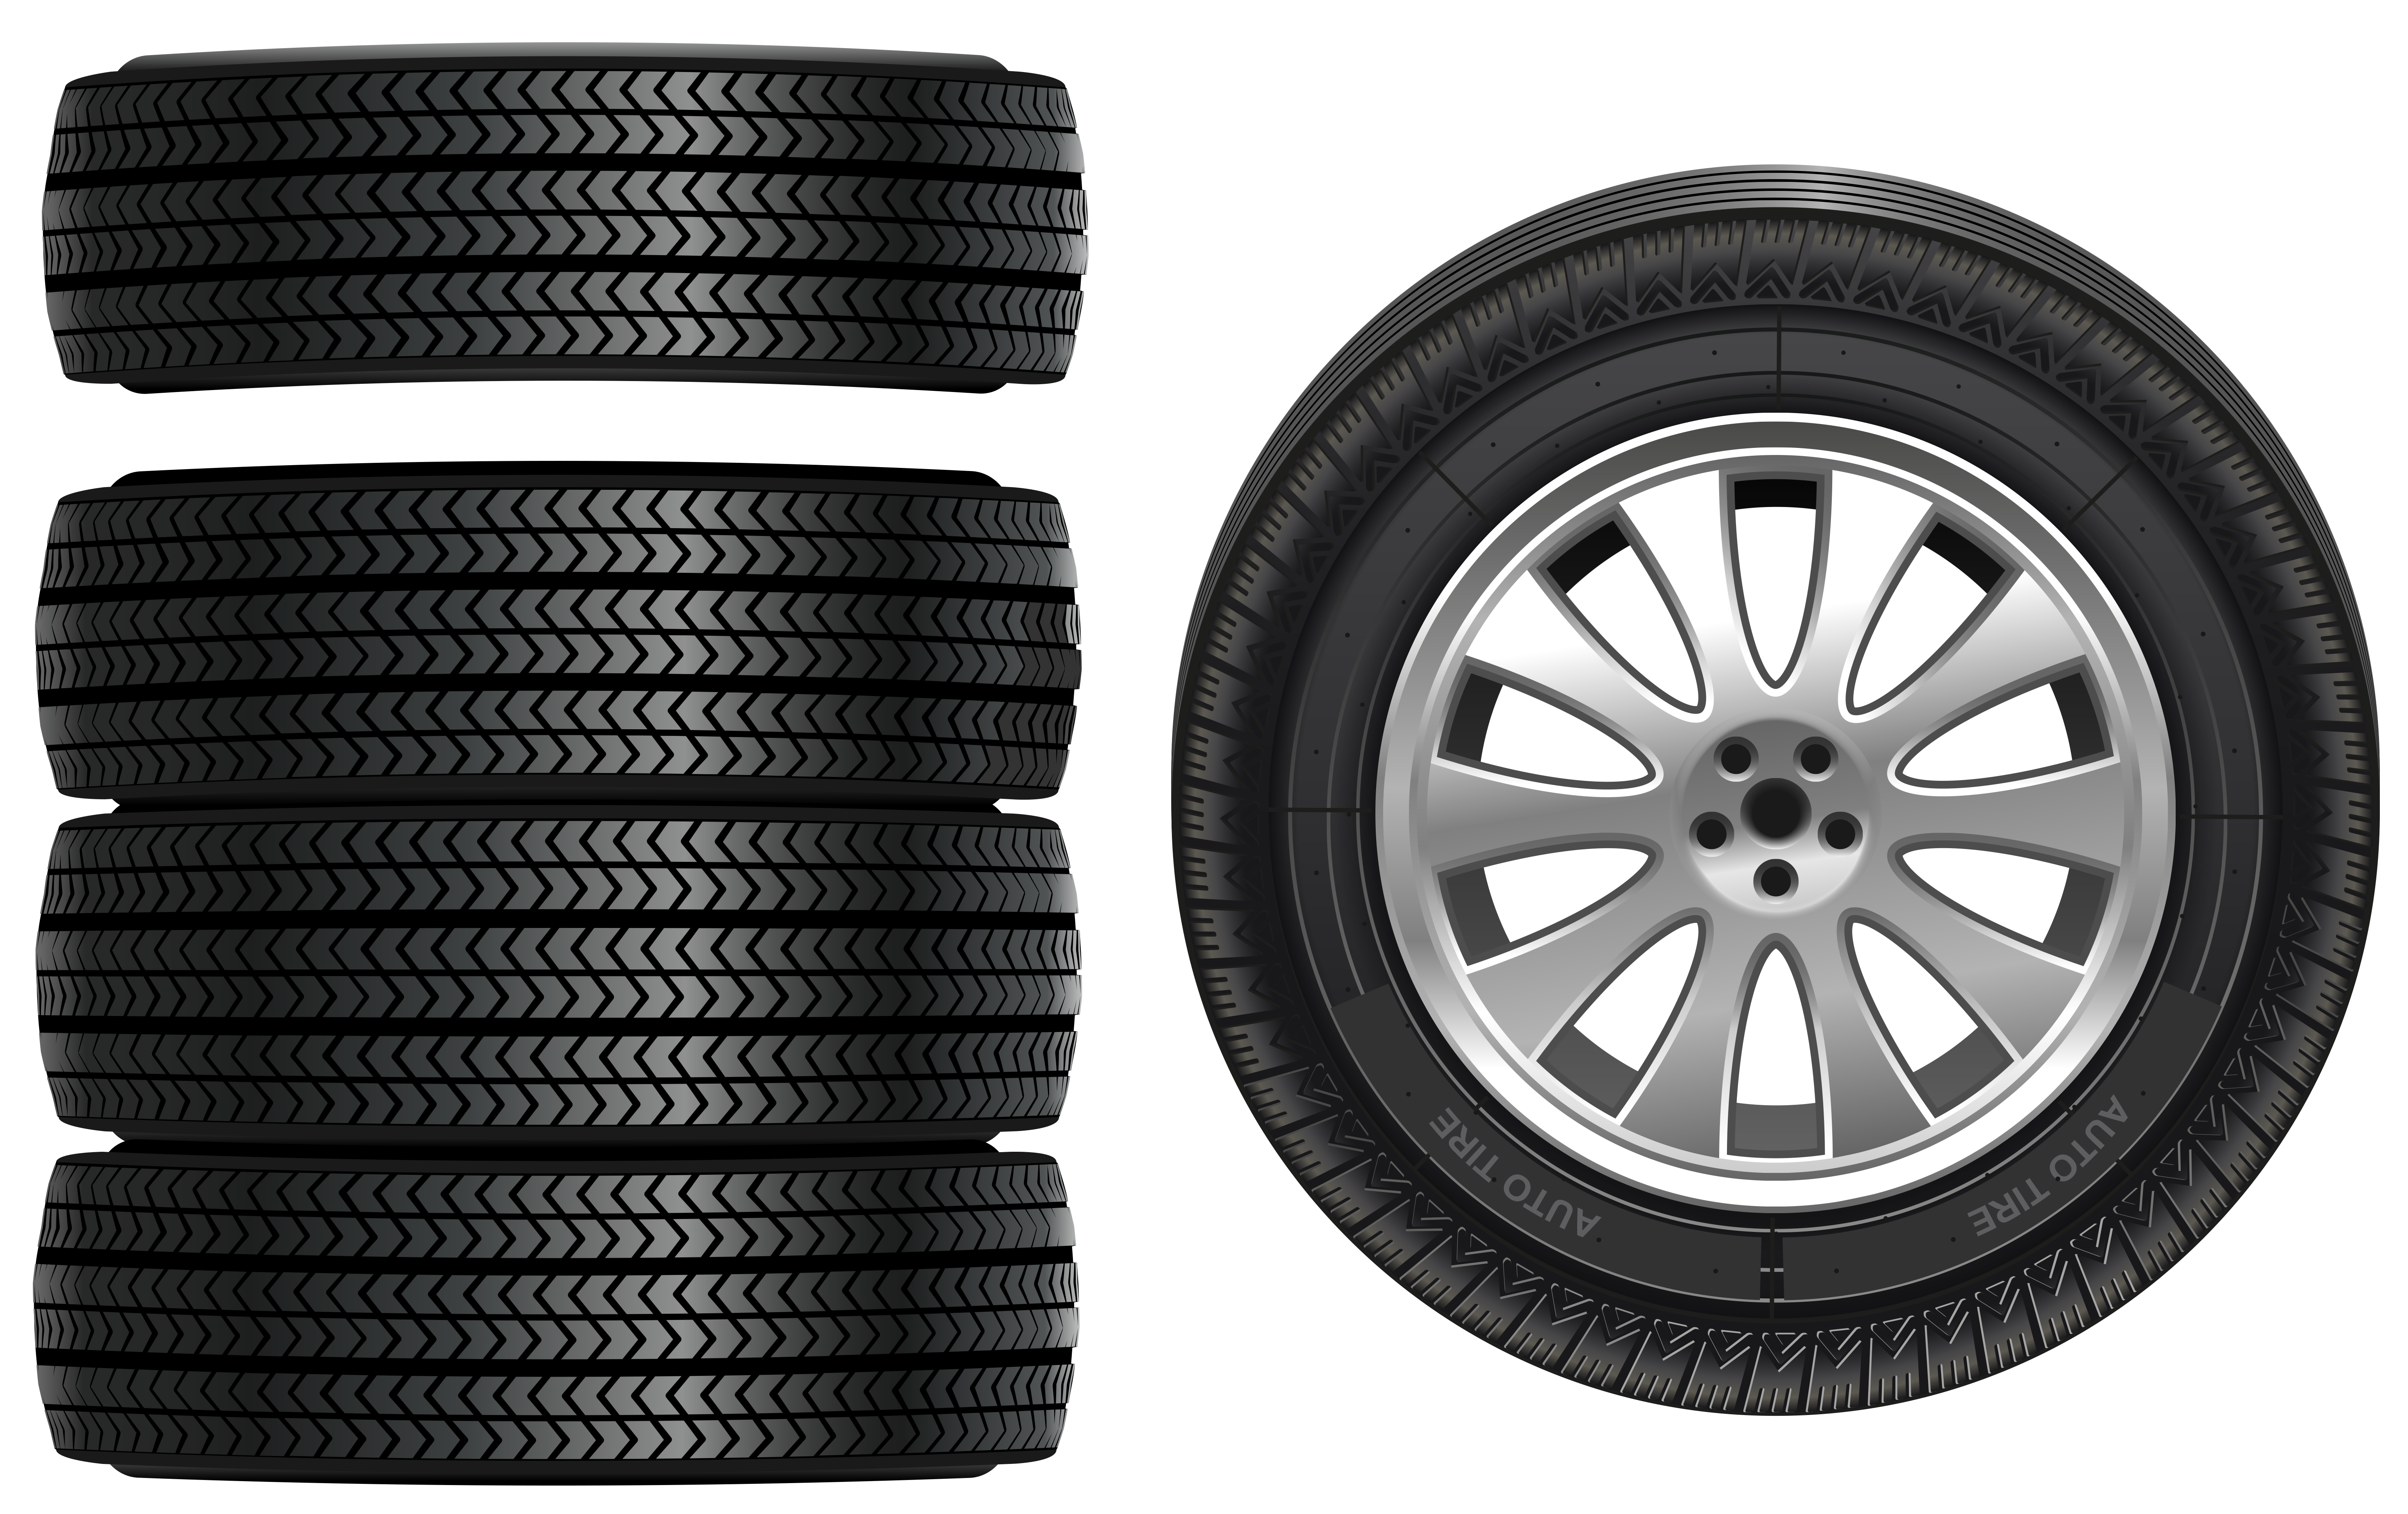 Parts of the sun clipart graphic black and white stock Tires PNG Clip Art - Best WEB Clipart graphic black and white stock